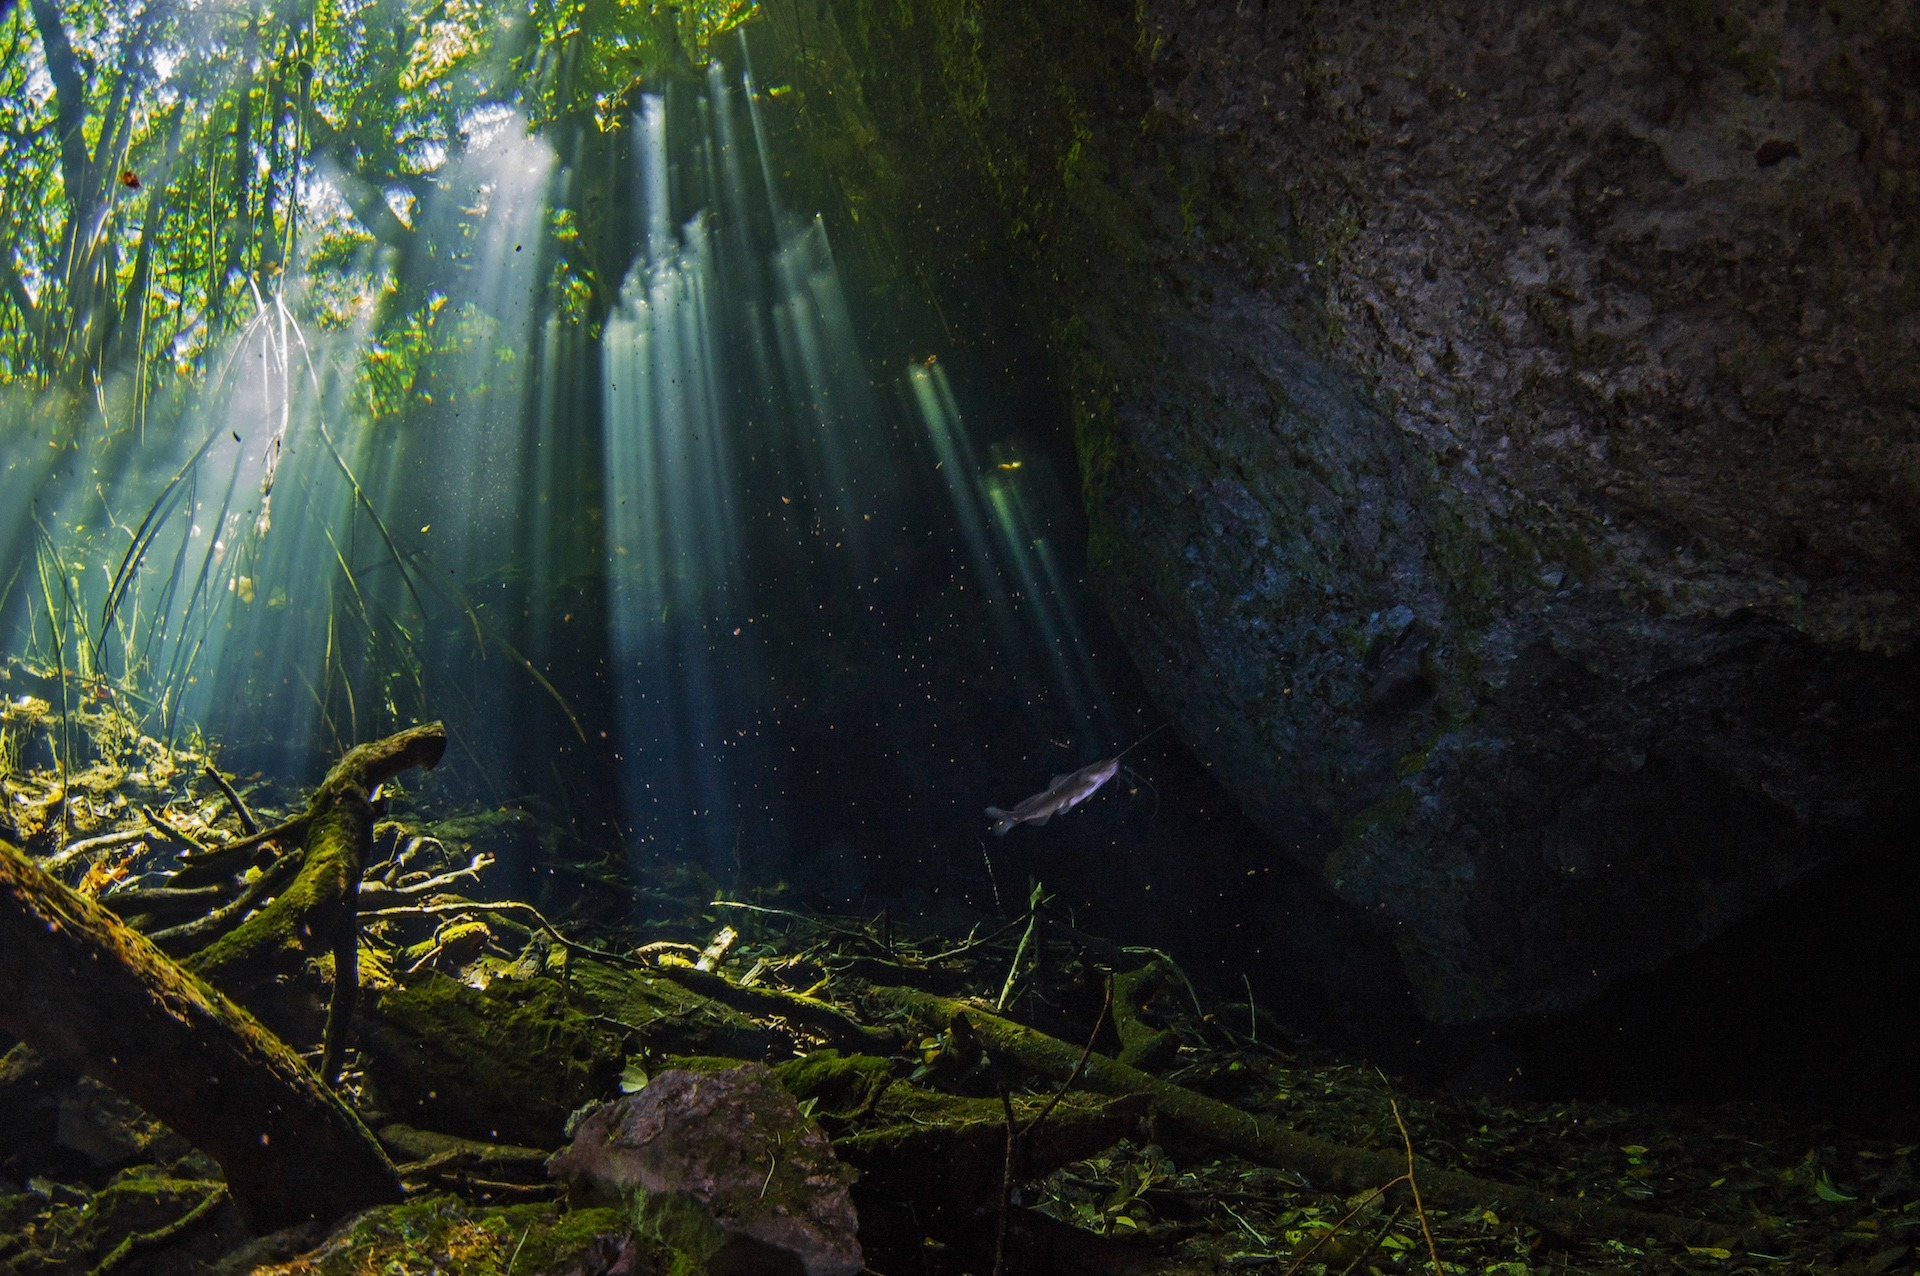 At the Taj Mahal cenote, beams of sunlight shine through the crystal clear water, revealing fish and organic debris. Divers can also see plenty of fossil shells, stalactites, and stalagmites. Under the first layer of fresh water is a halocline layer, under which is a layer of saltwater.